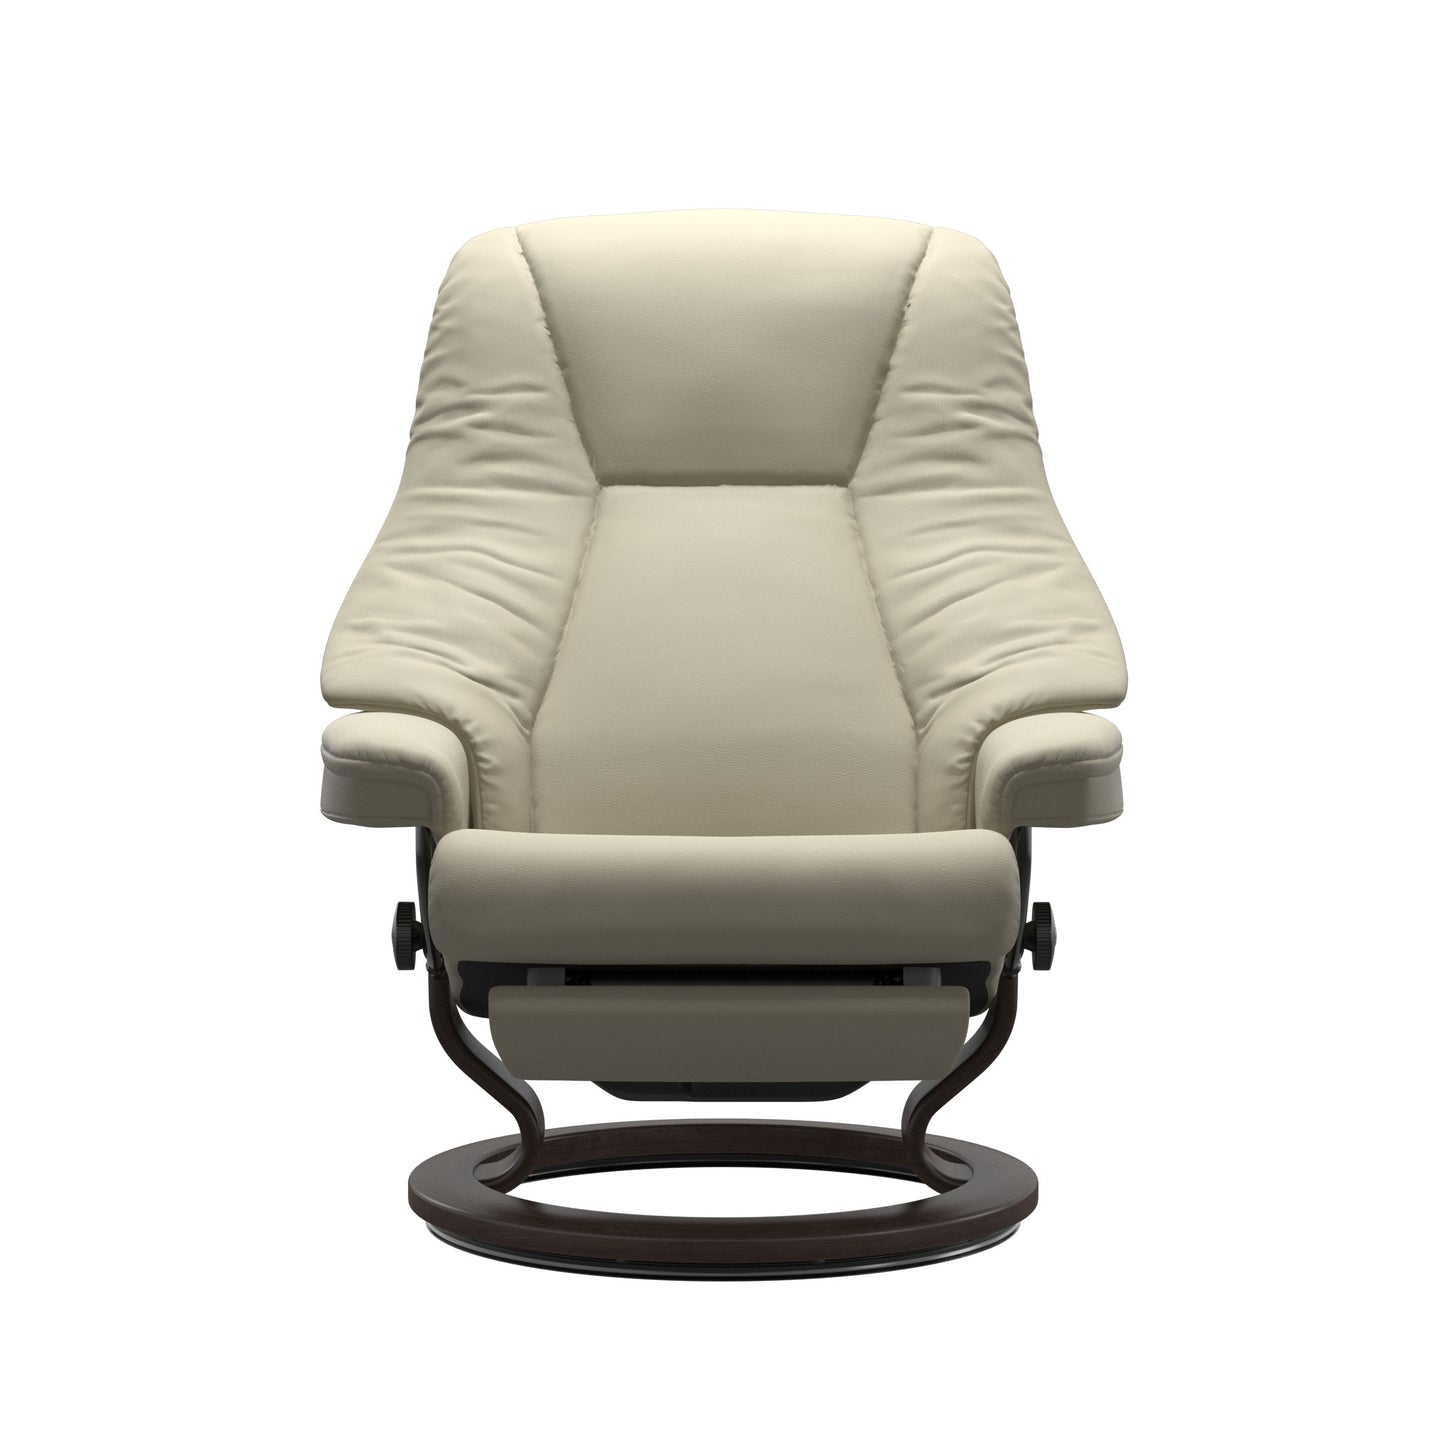 Stressless® Live (M) Classic Power leg